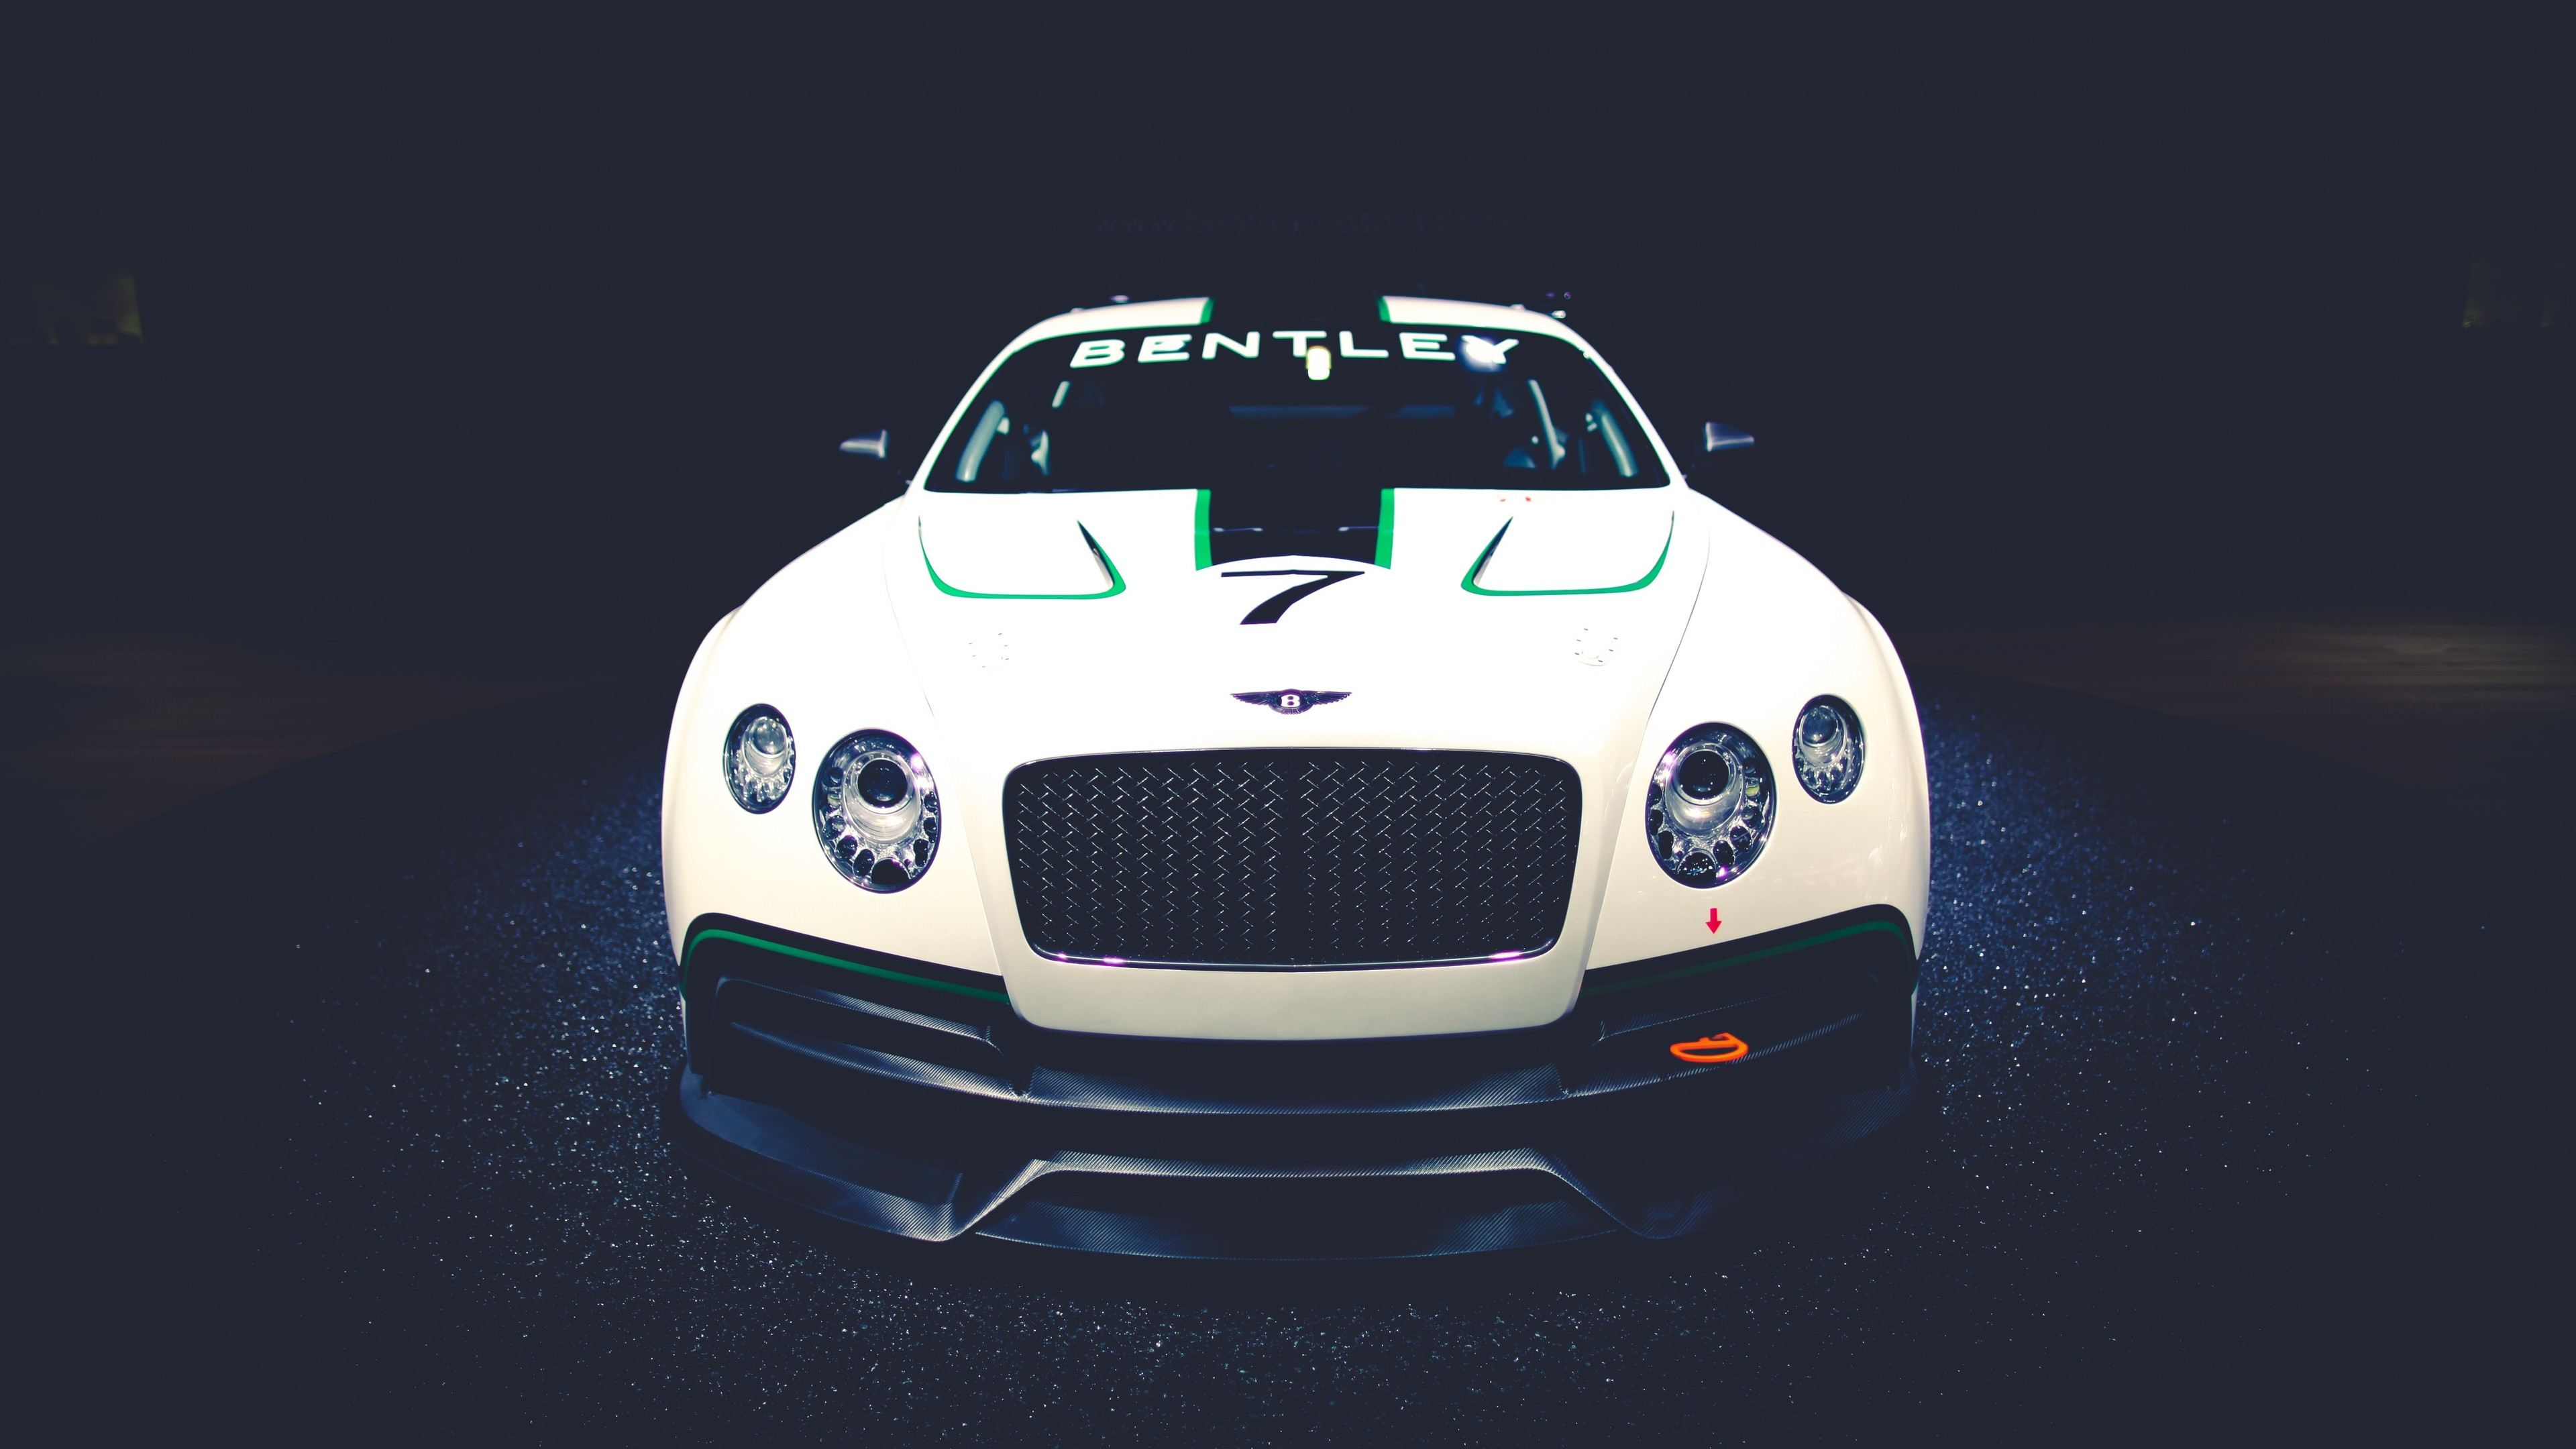 bentley continental gt3 4k 1547937318 - Bentley Continental GT3 4k - hd-wallpapers, bentley wallpapers, bentley continental wallpapers, bentley continental gt3 wallpapers, 4k-wallpapers